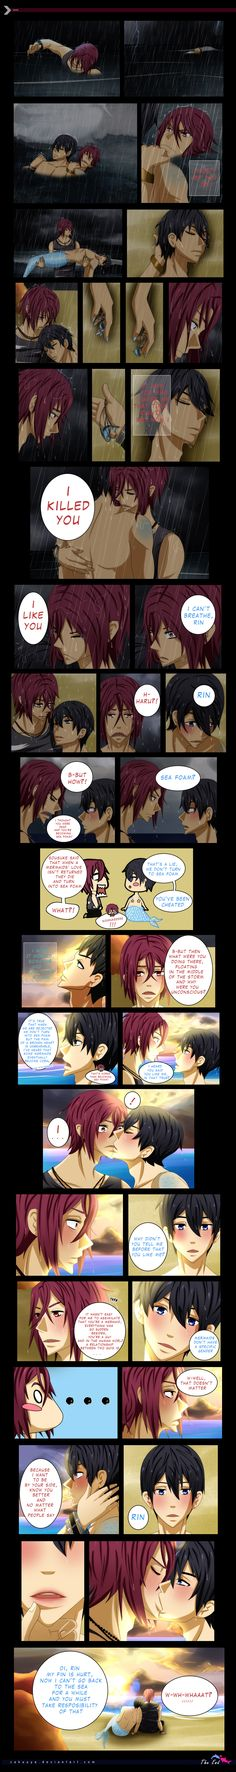 RinHaru: A Mermaid Tale 24 - THE END by Zakuuya.deviantart.com on @DeviantArt